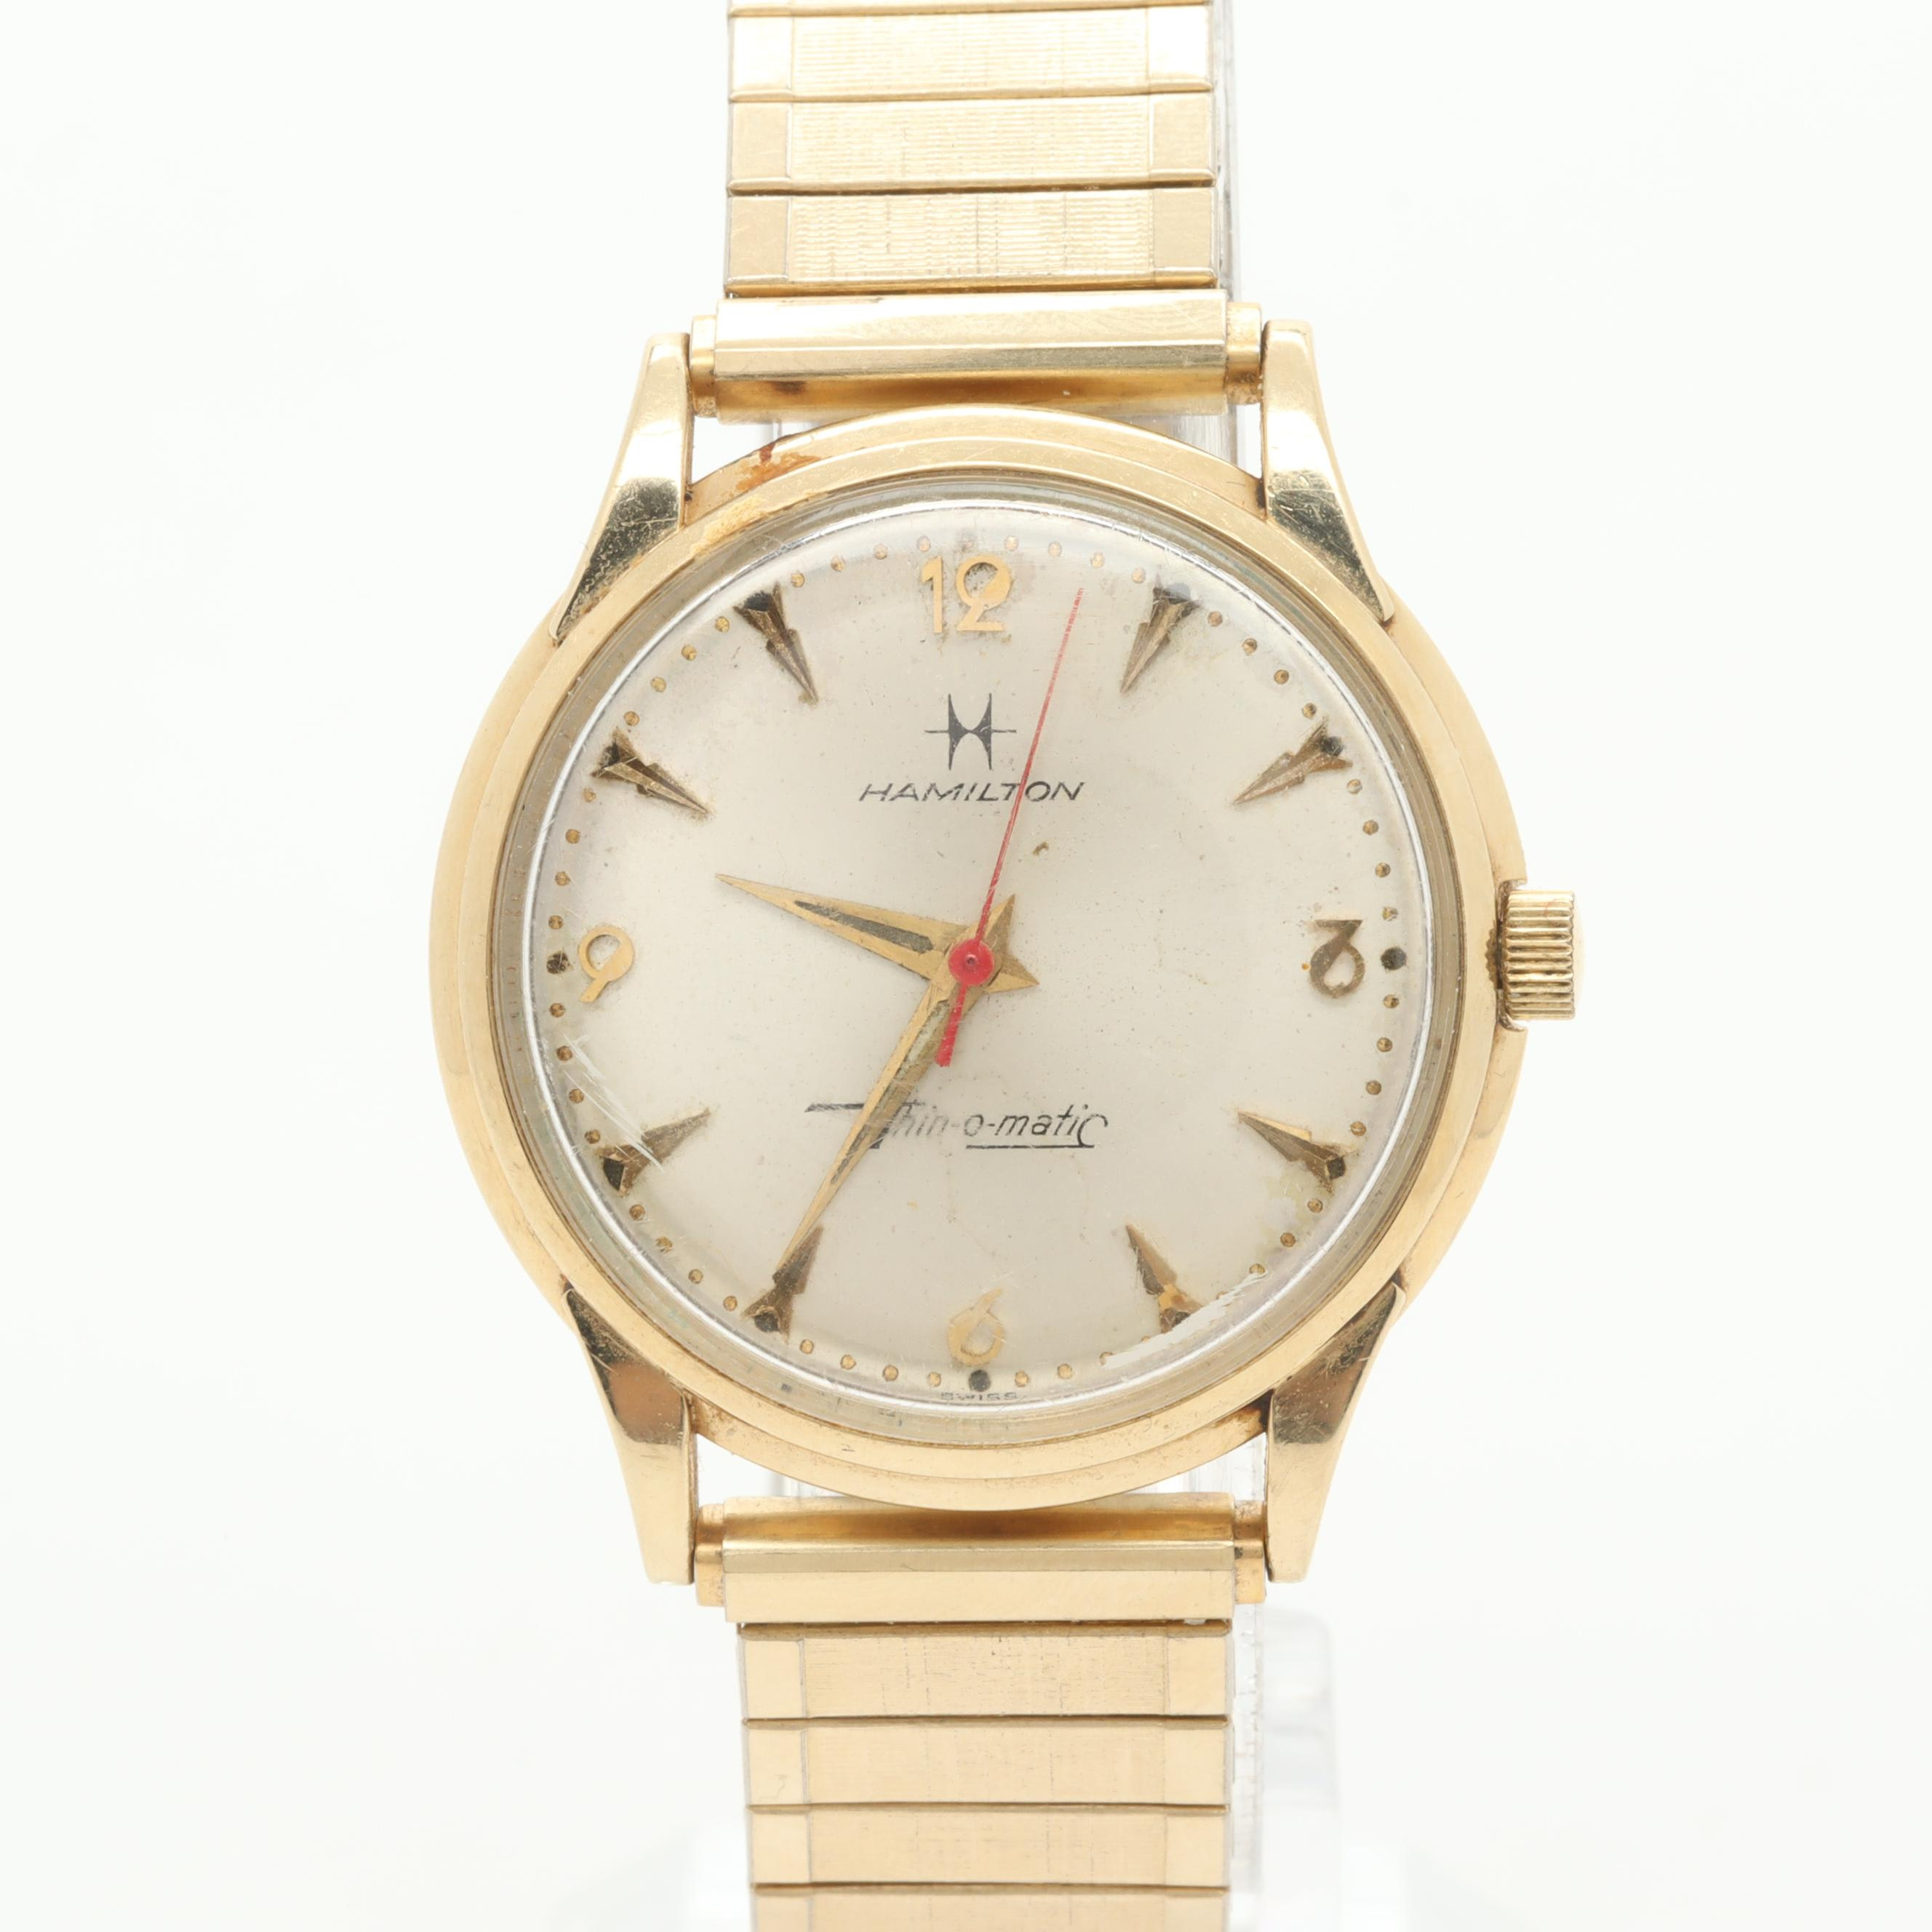 Hamilton 14K Yellow Gold Wristwatch with Expansion Band